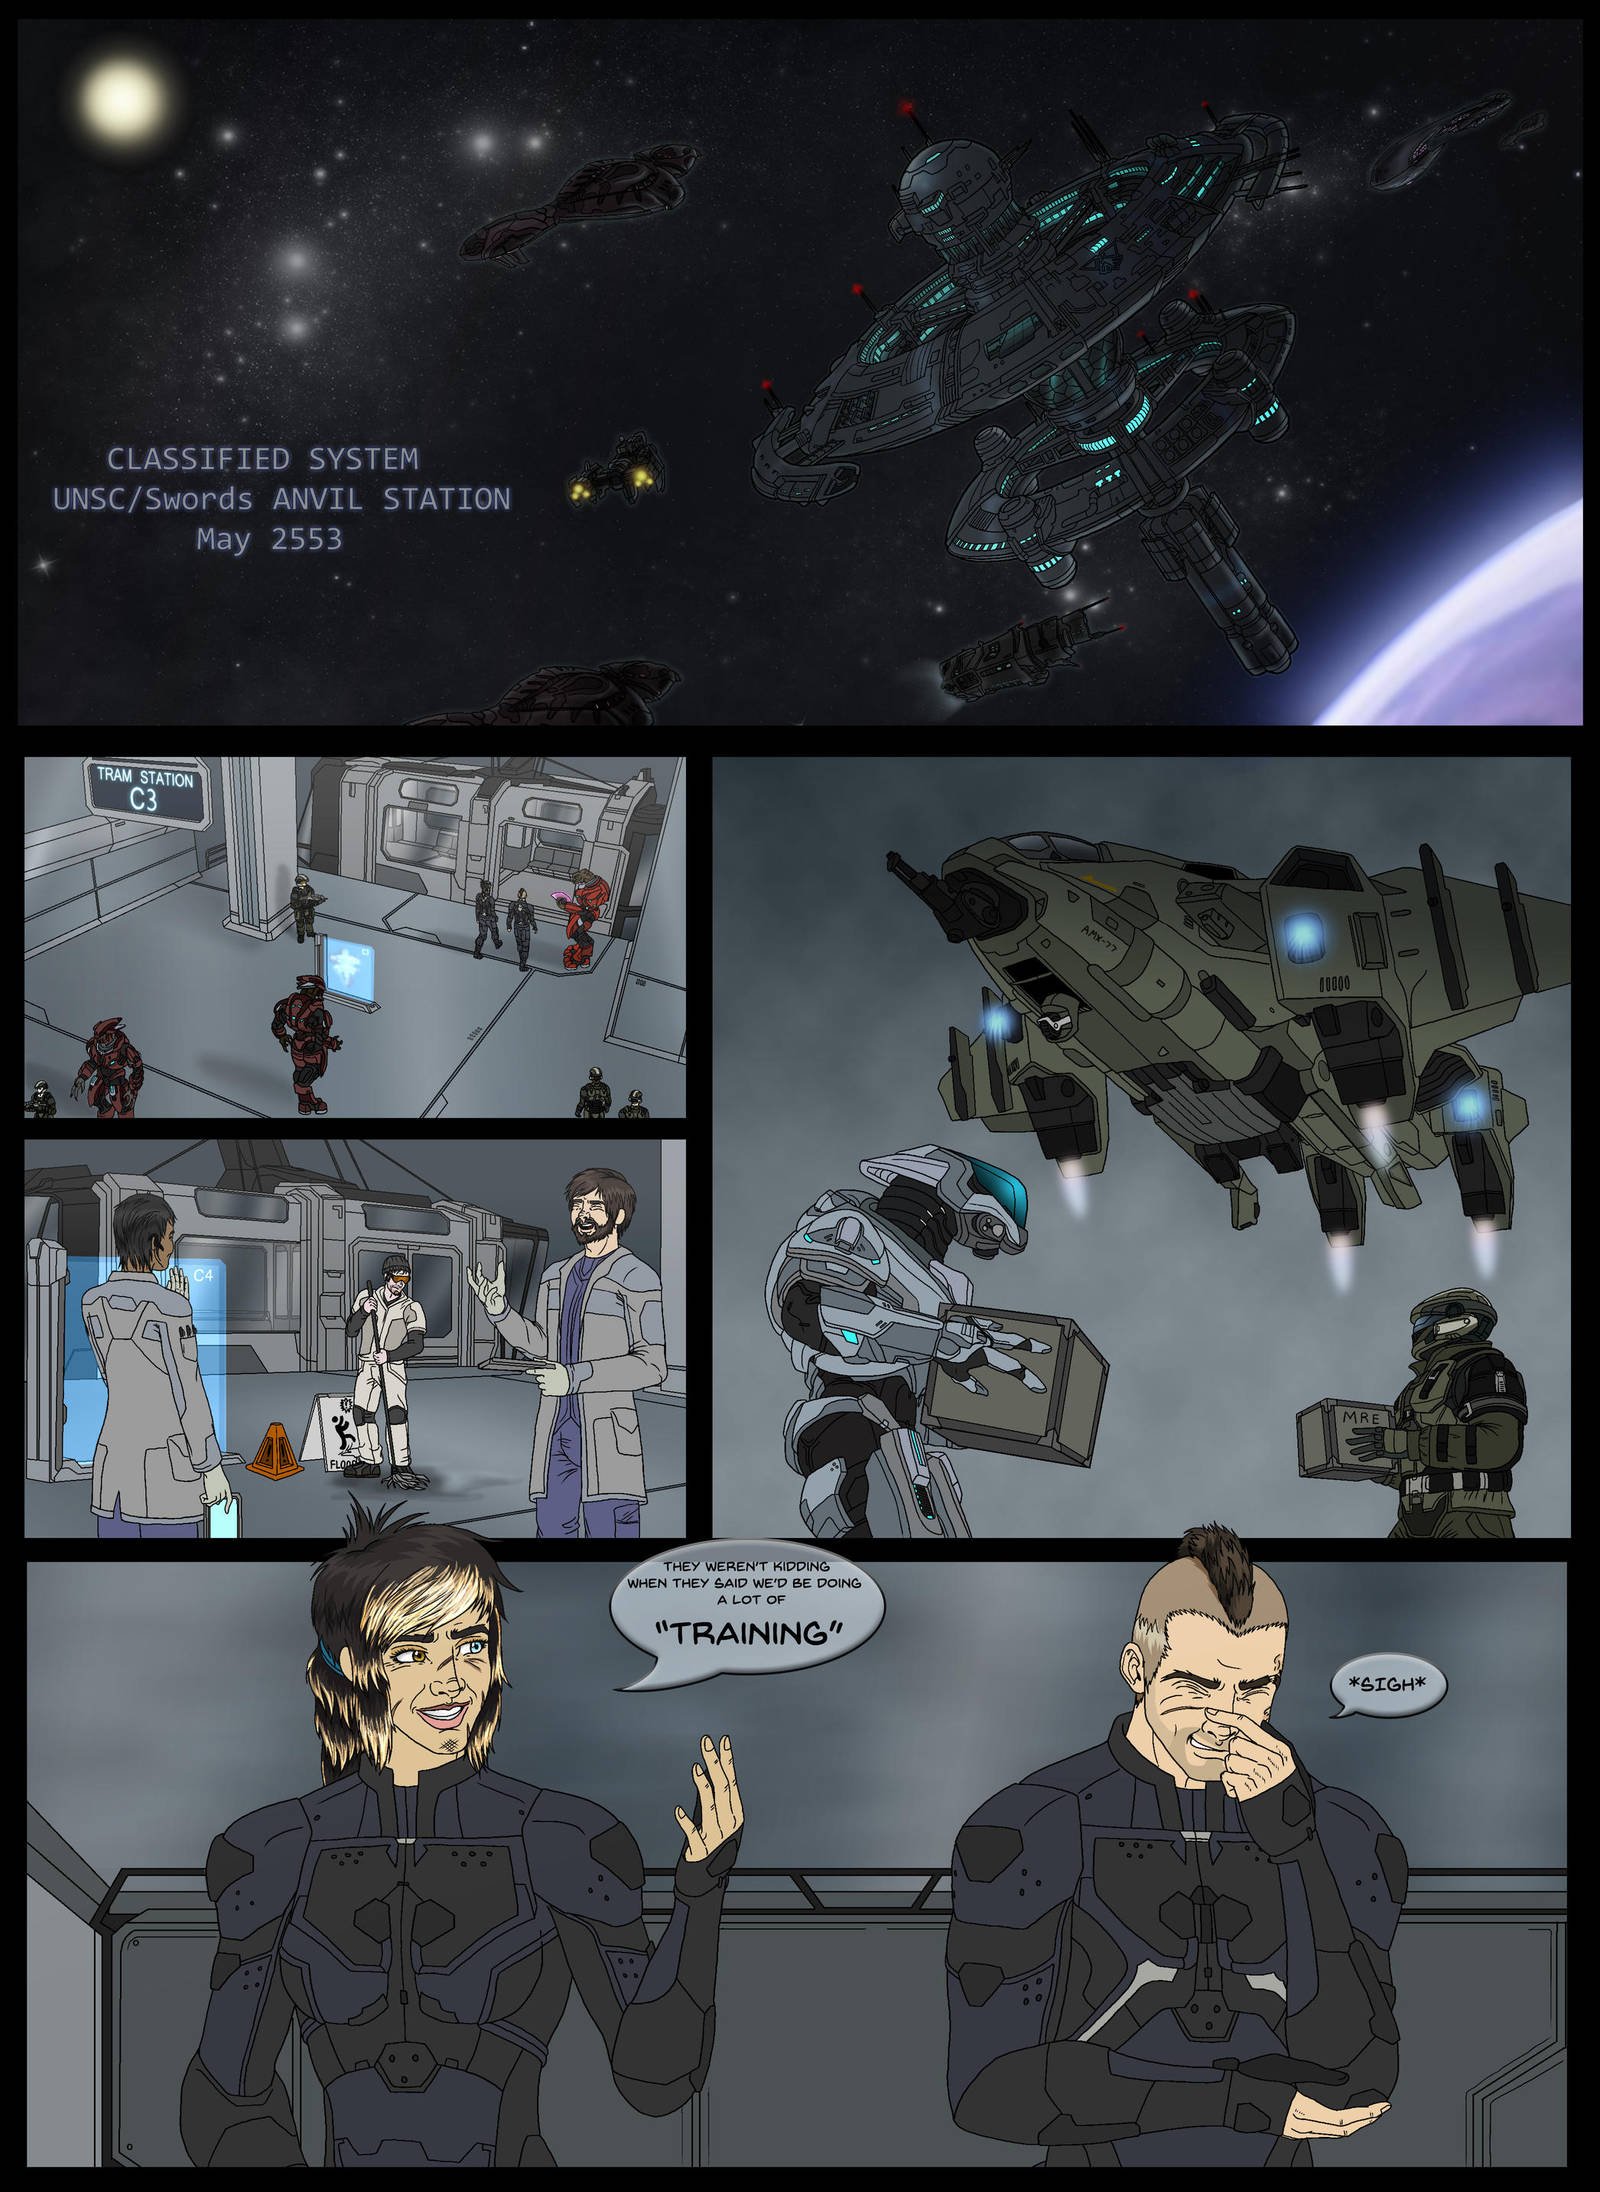 Halo Ammunition: Anvil Initiative Pg 3 by Guyver89 | Halo